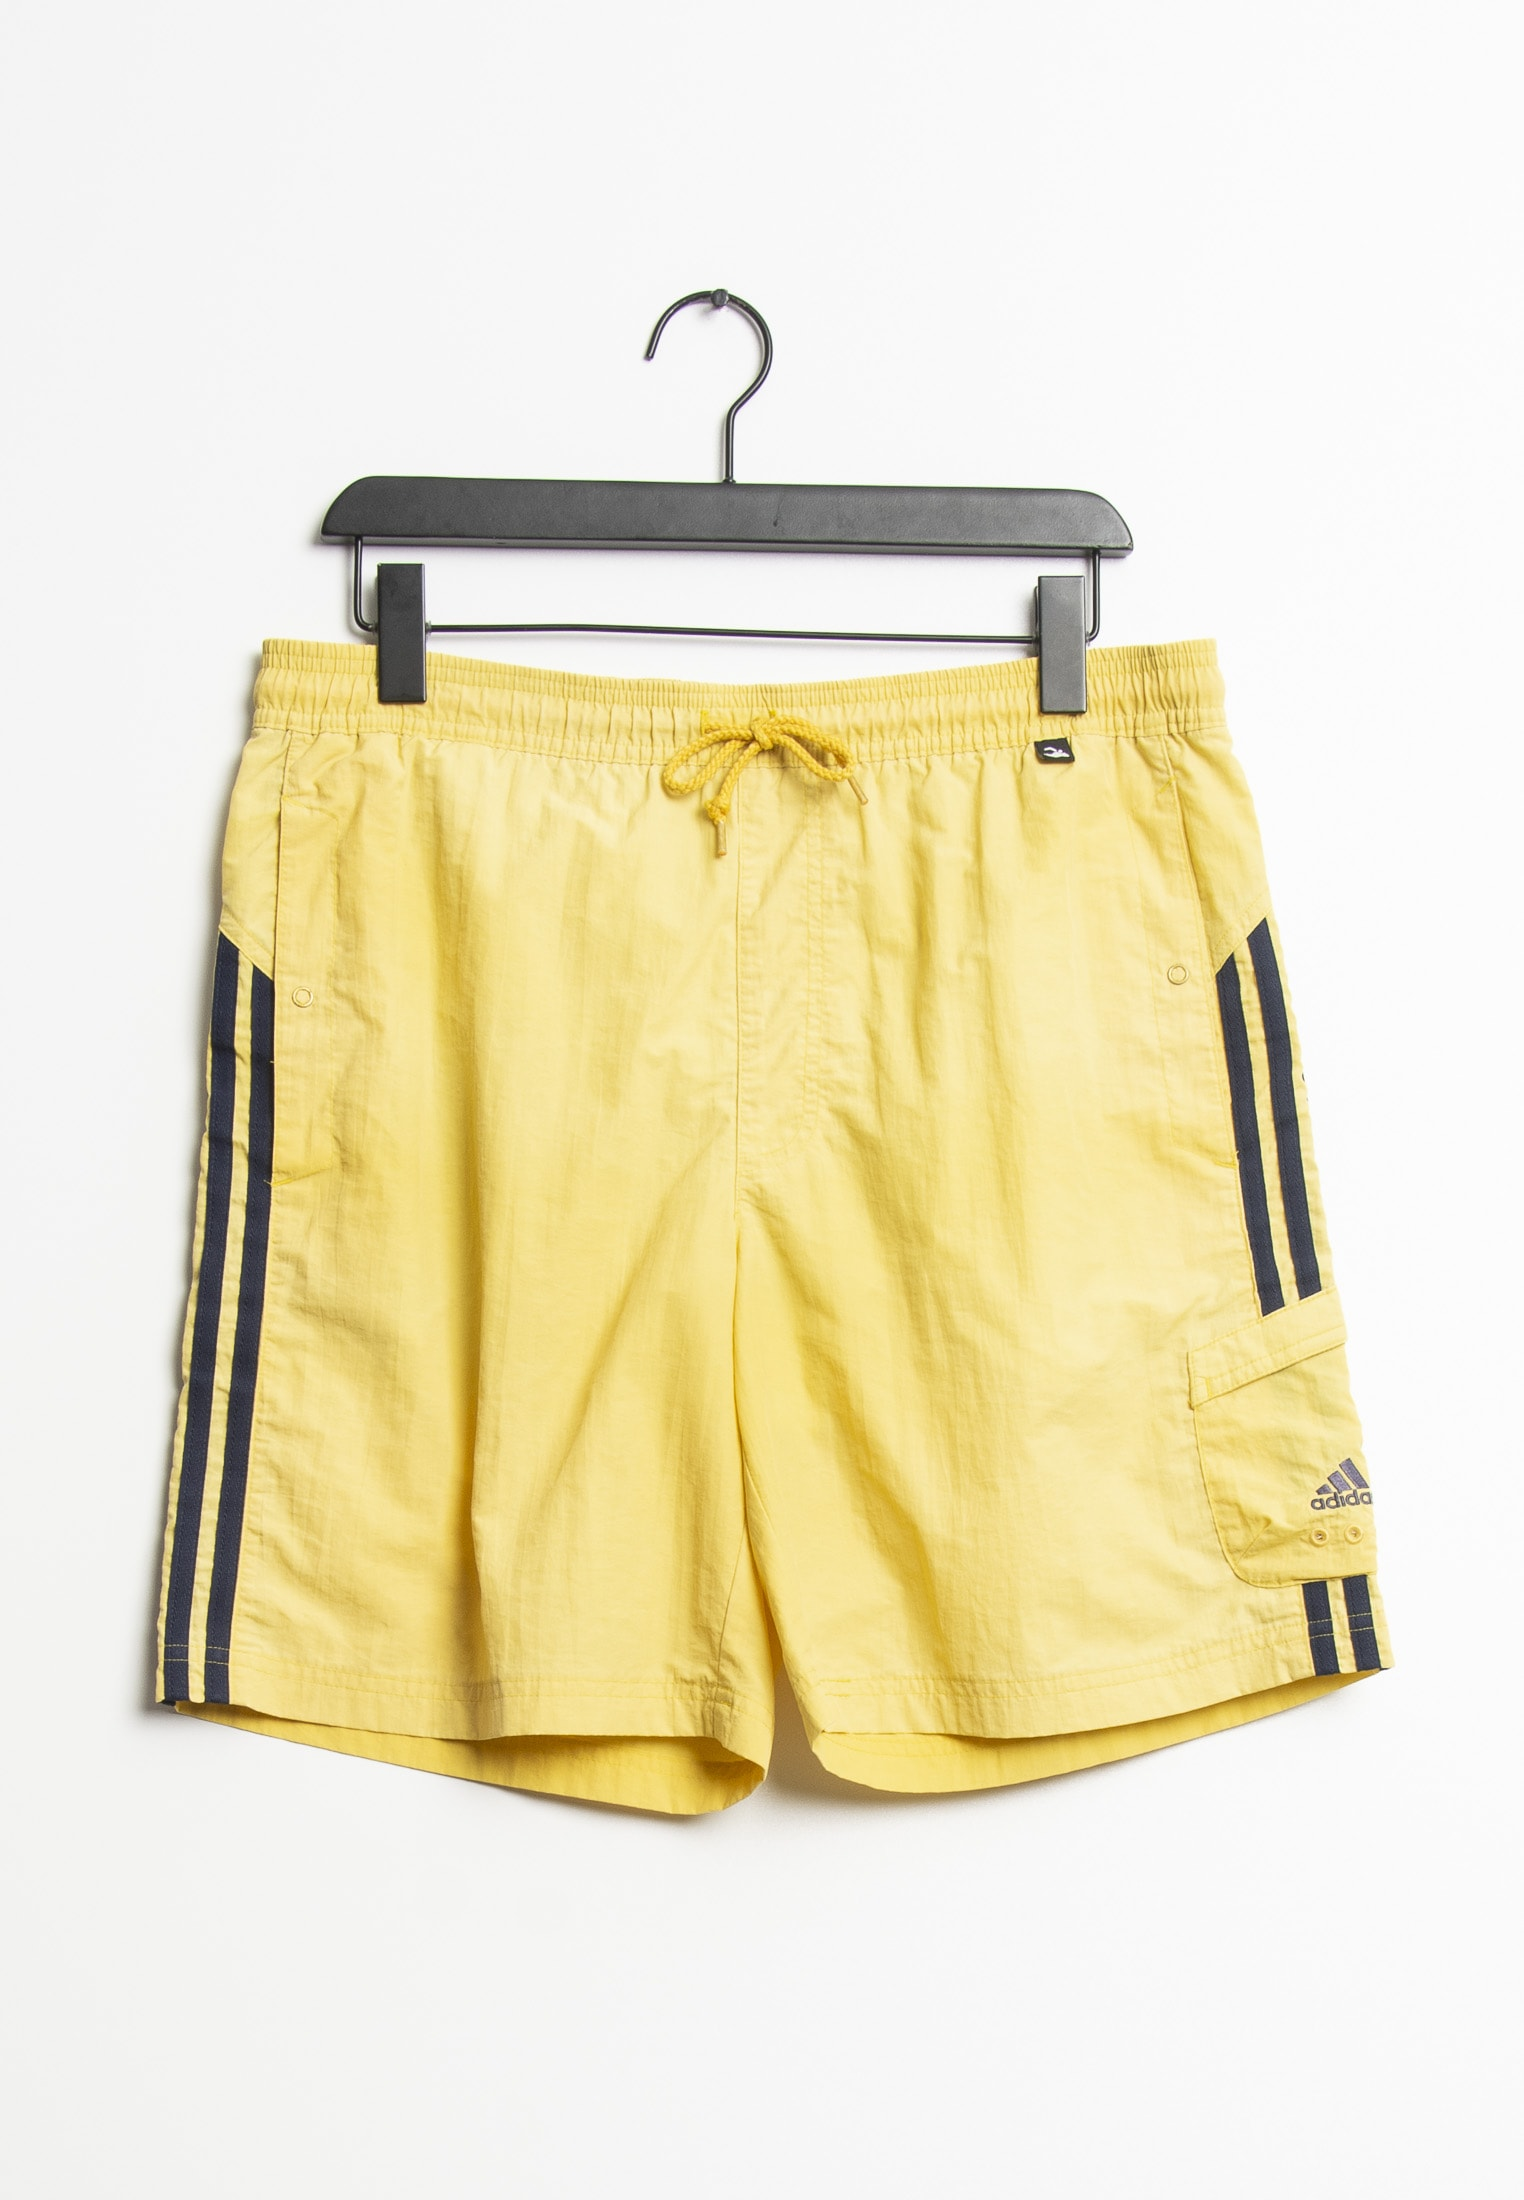 adidas Originals Shorts Gelb Gr.M